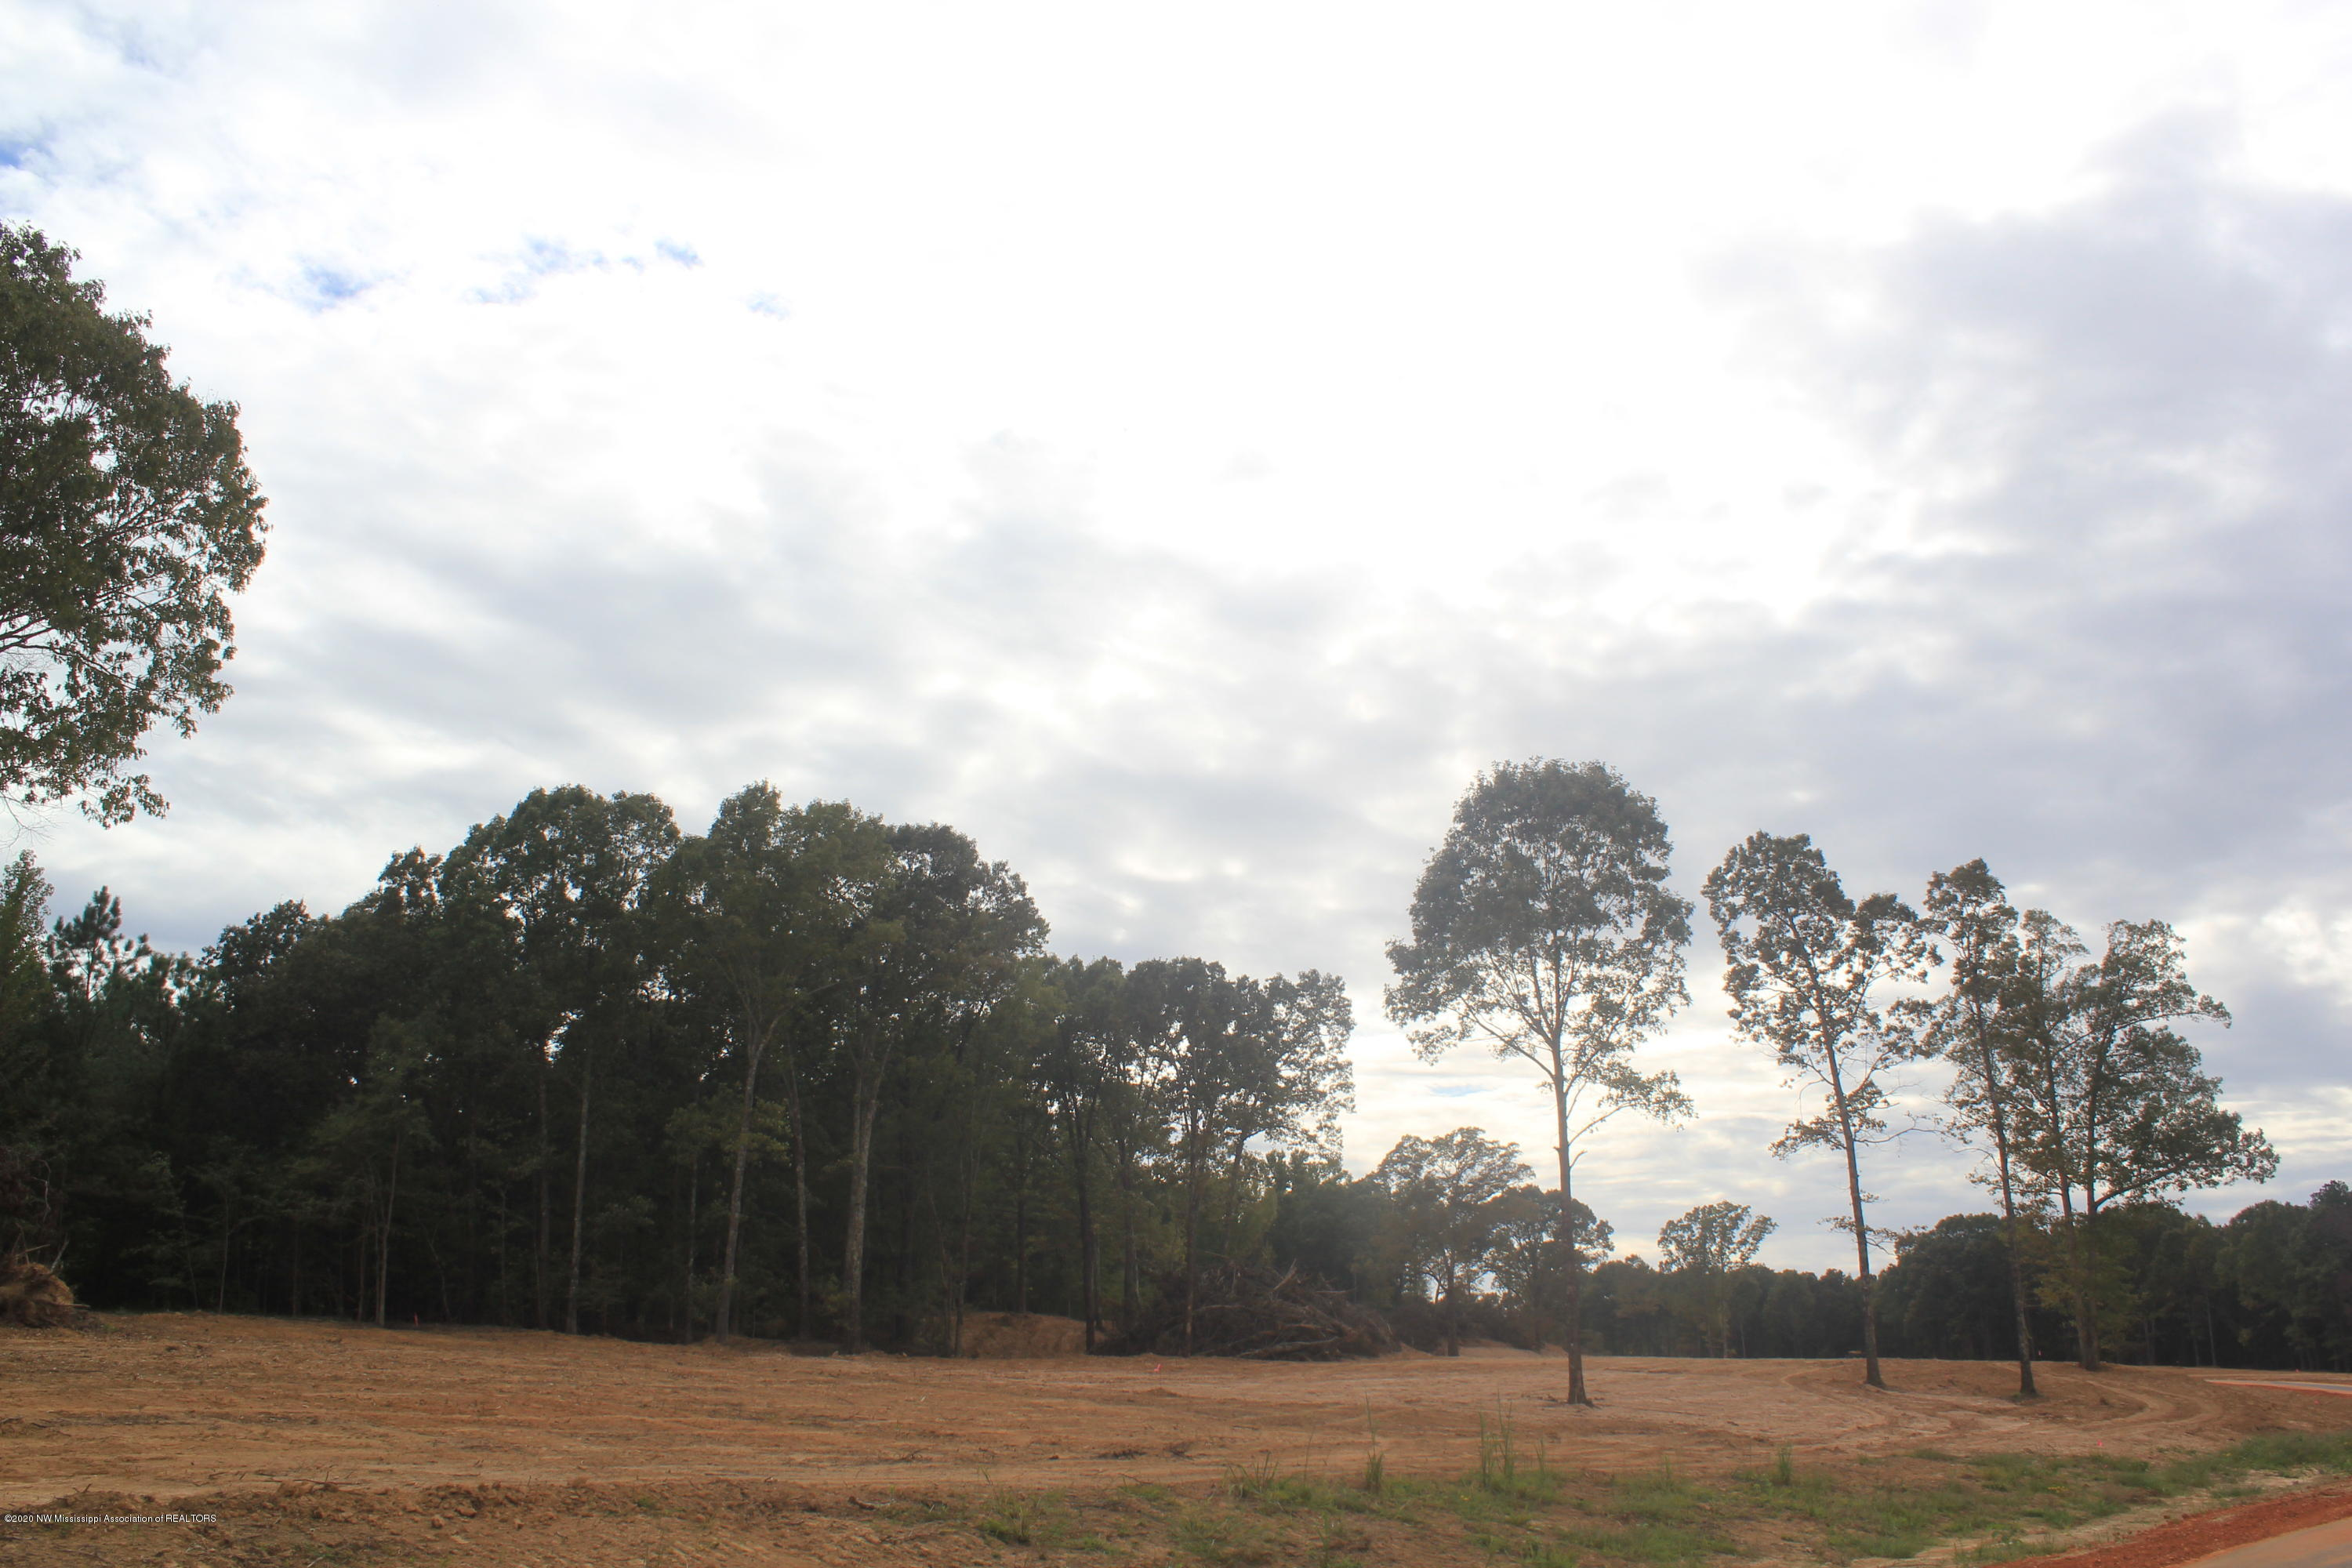 68 Hayward Drive, Marshall, Mississippi 38611, ,Land,For Sale,Hayward,331672